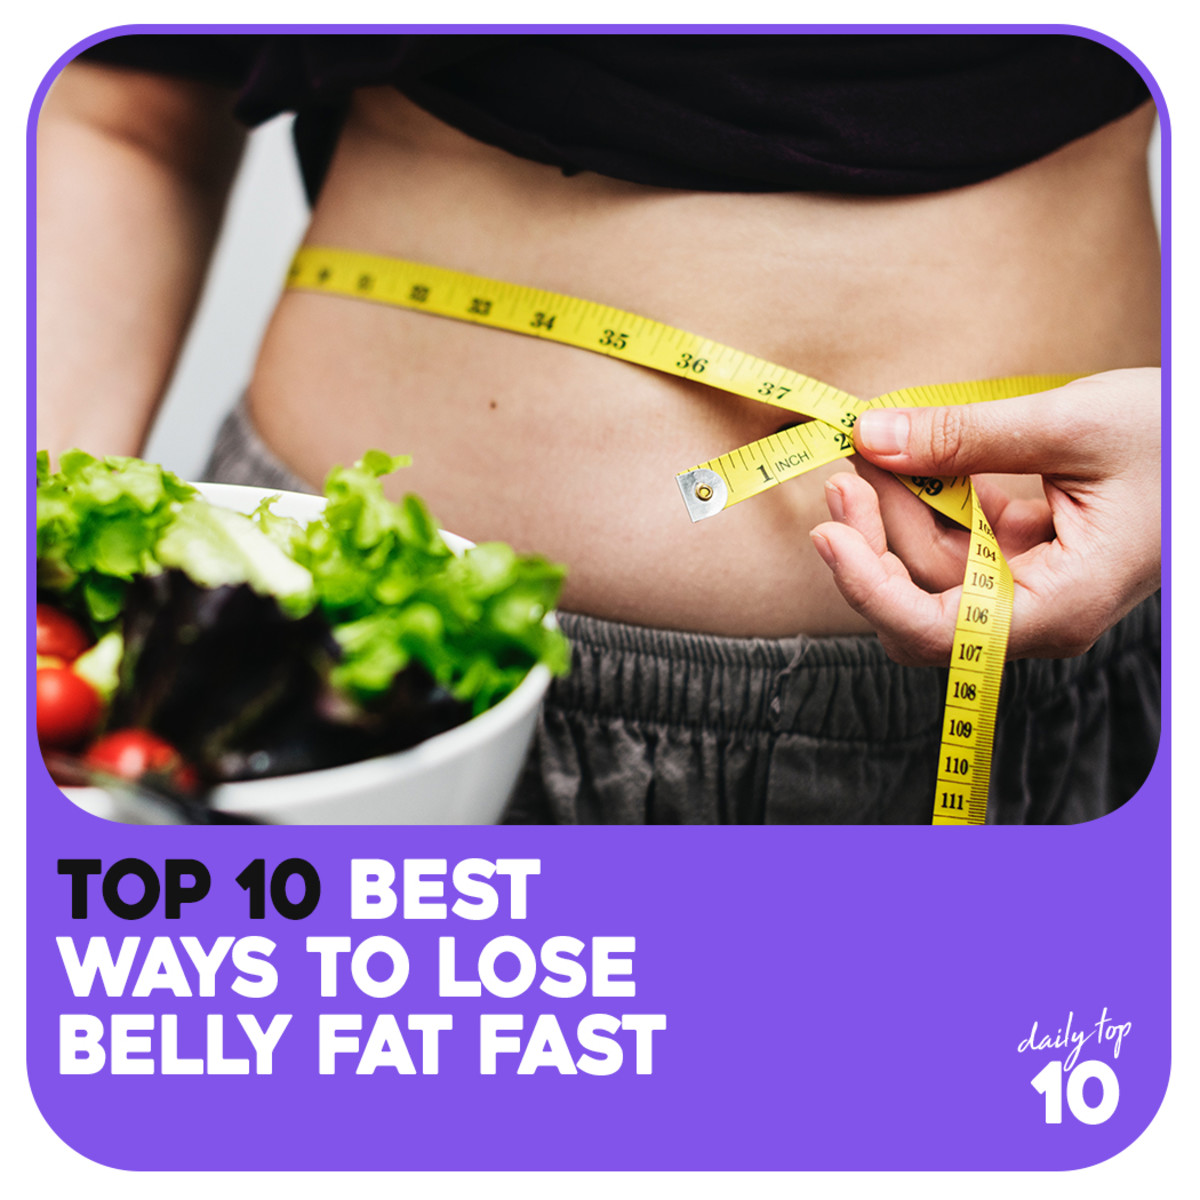 top-10-ways-to-lose-belly-fat-fast